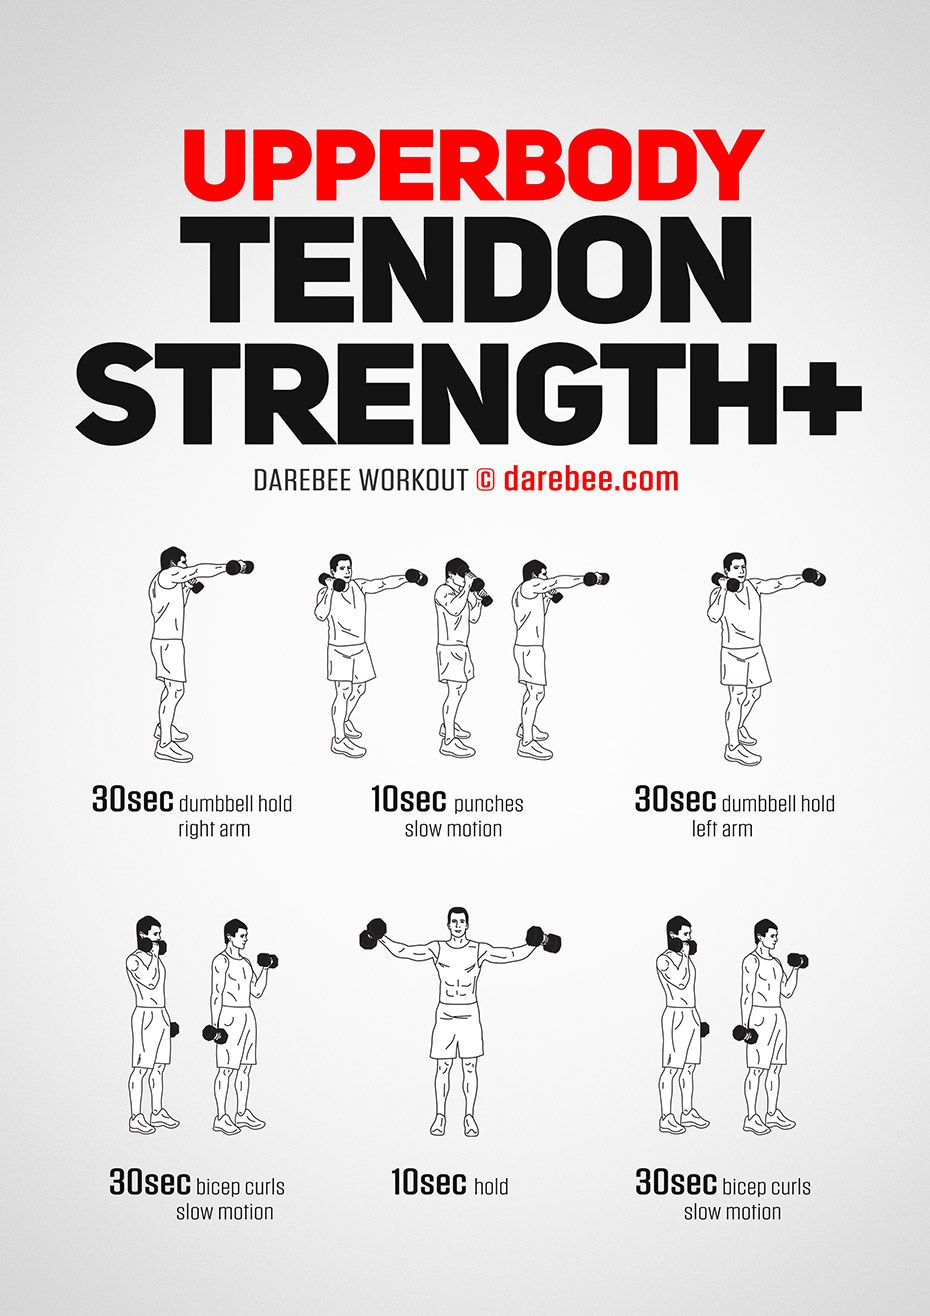 Upperbody Tendon Strength Plus Body Workout Plan Boxer Workout Dumbbell Workout